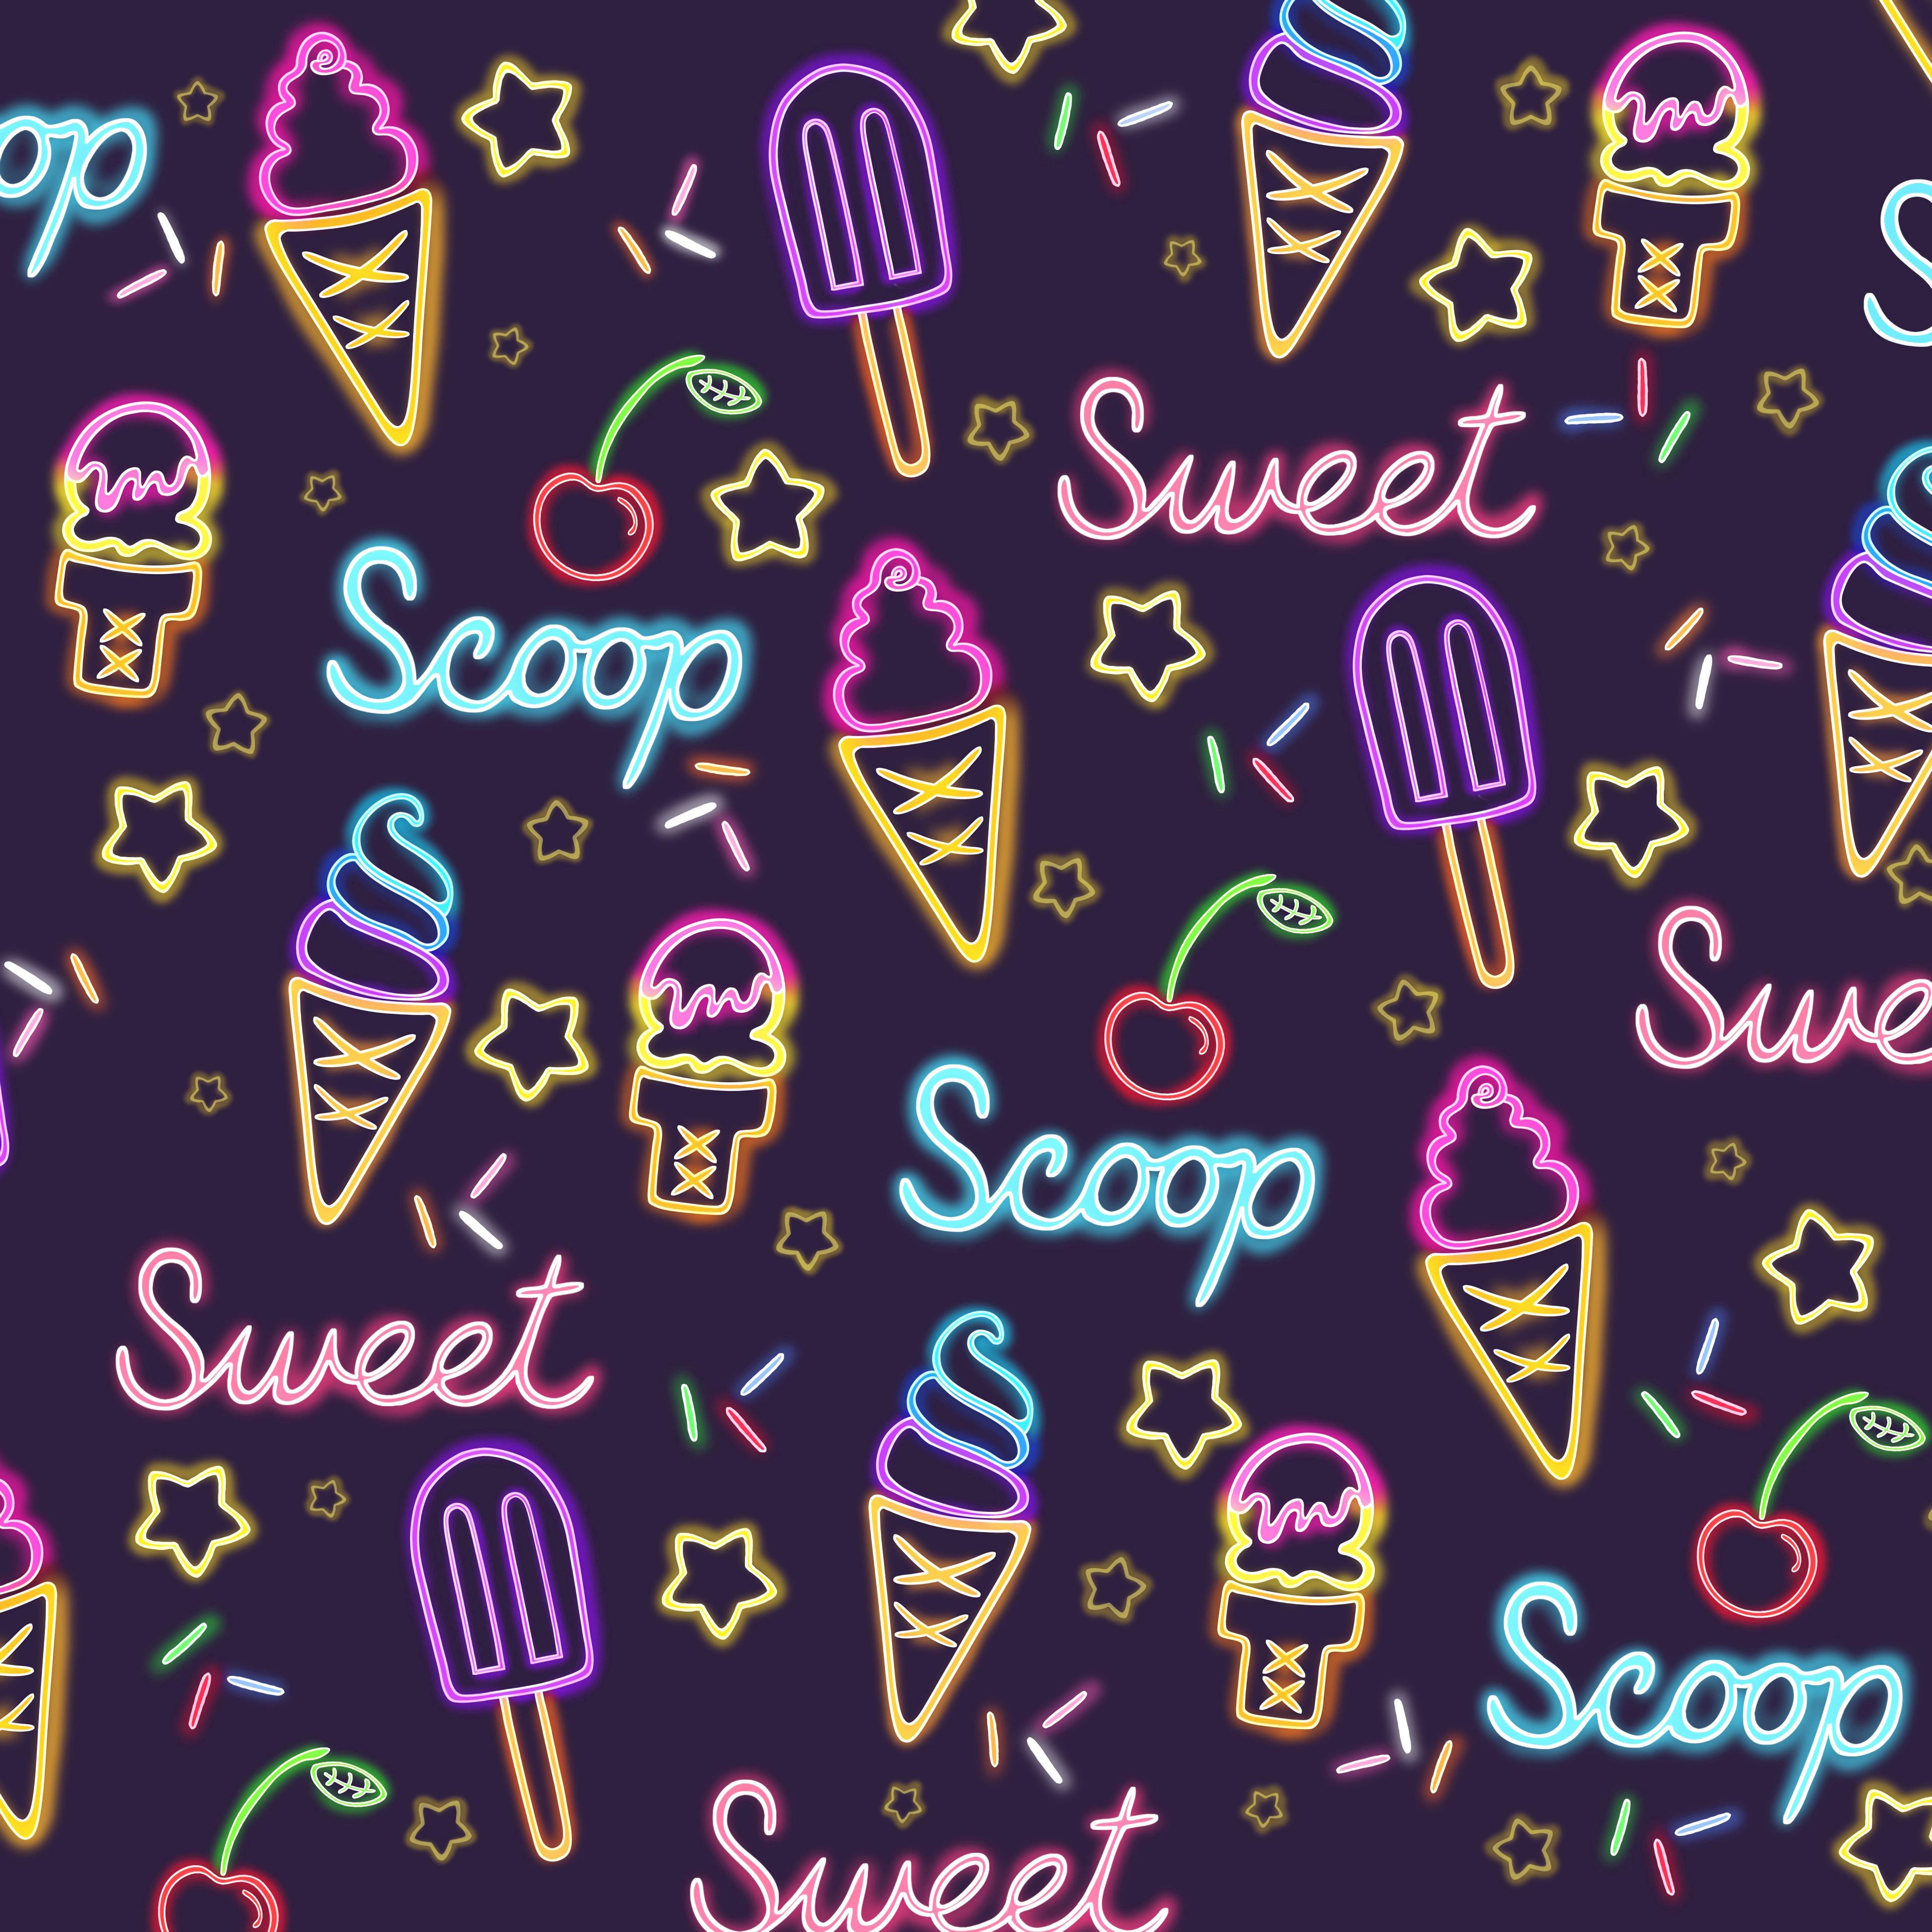 92867 download wallpaper Ice Cream, Neon, Patterns, Pattern, Texture, Textures, Sweet screensavers and pictures for free